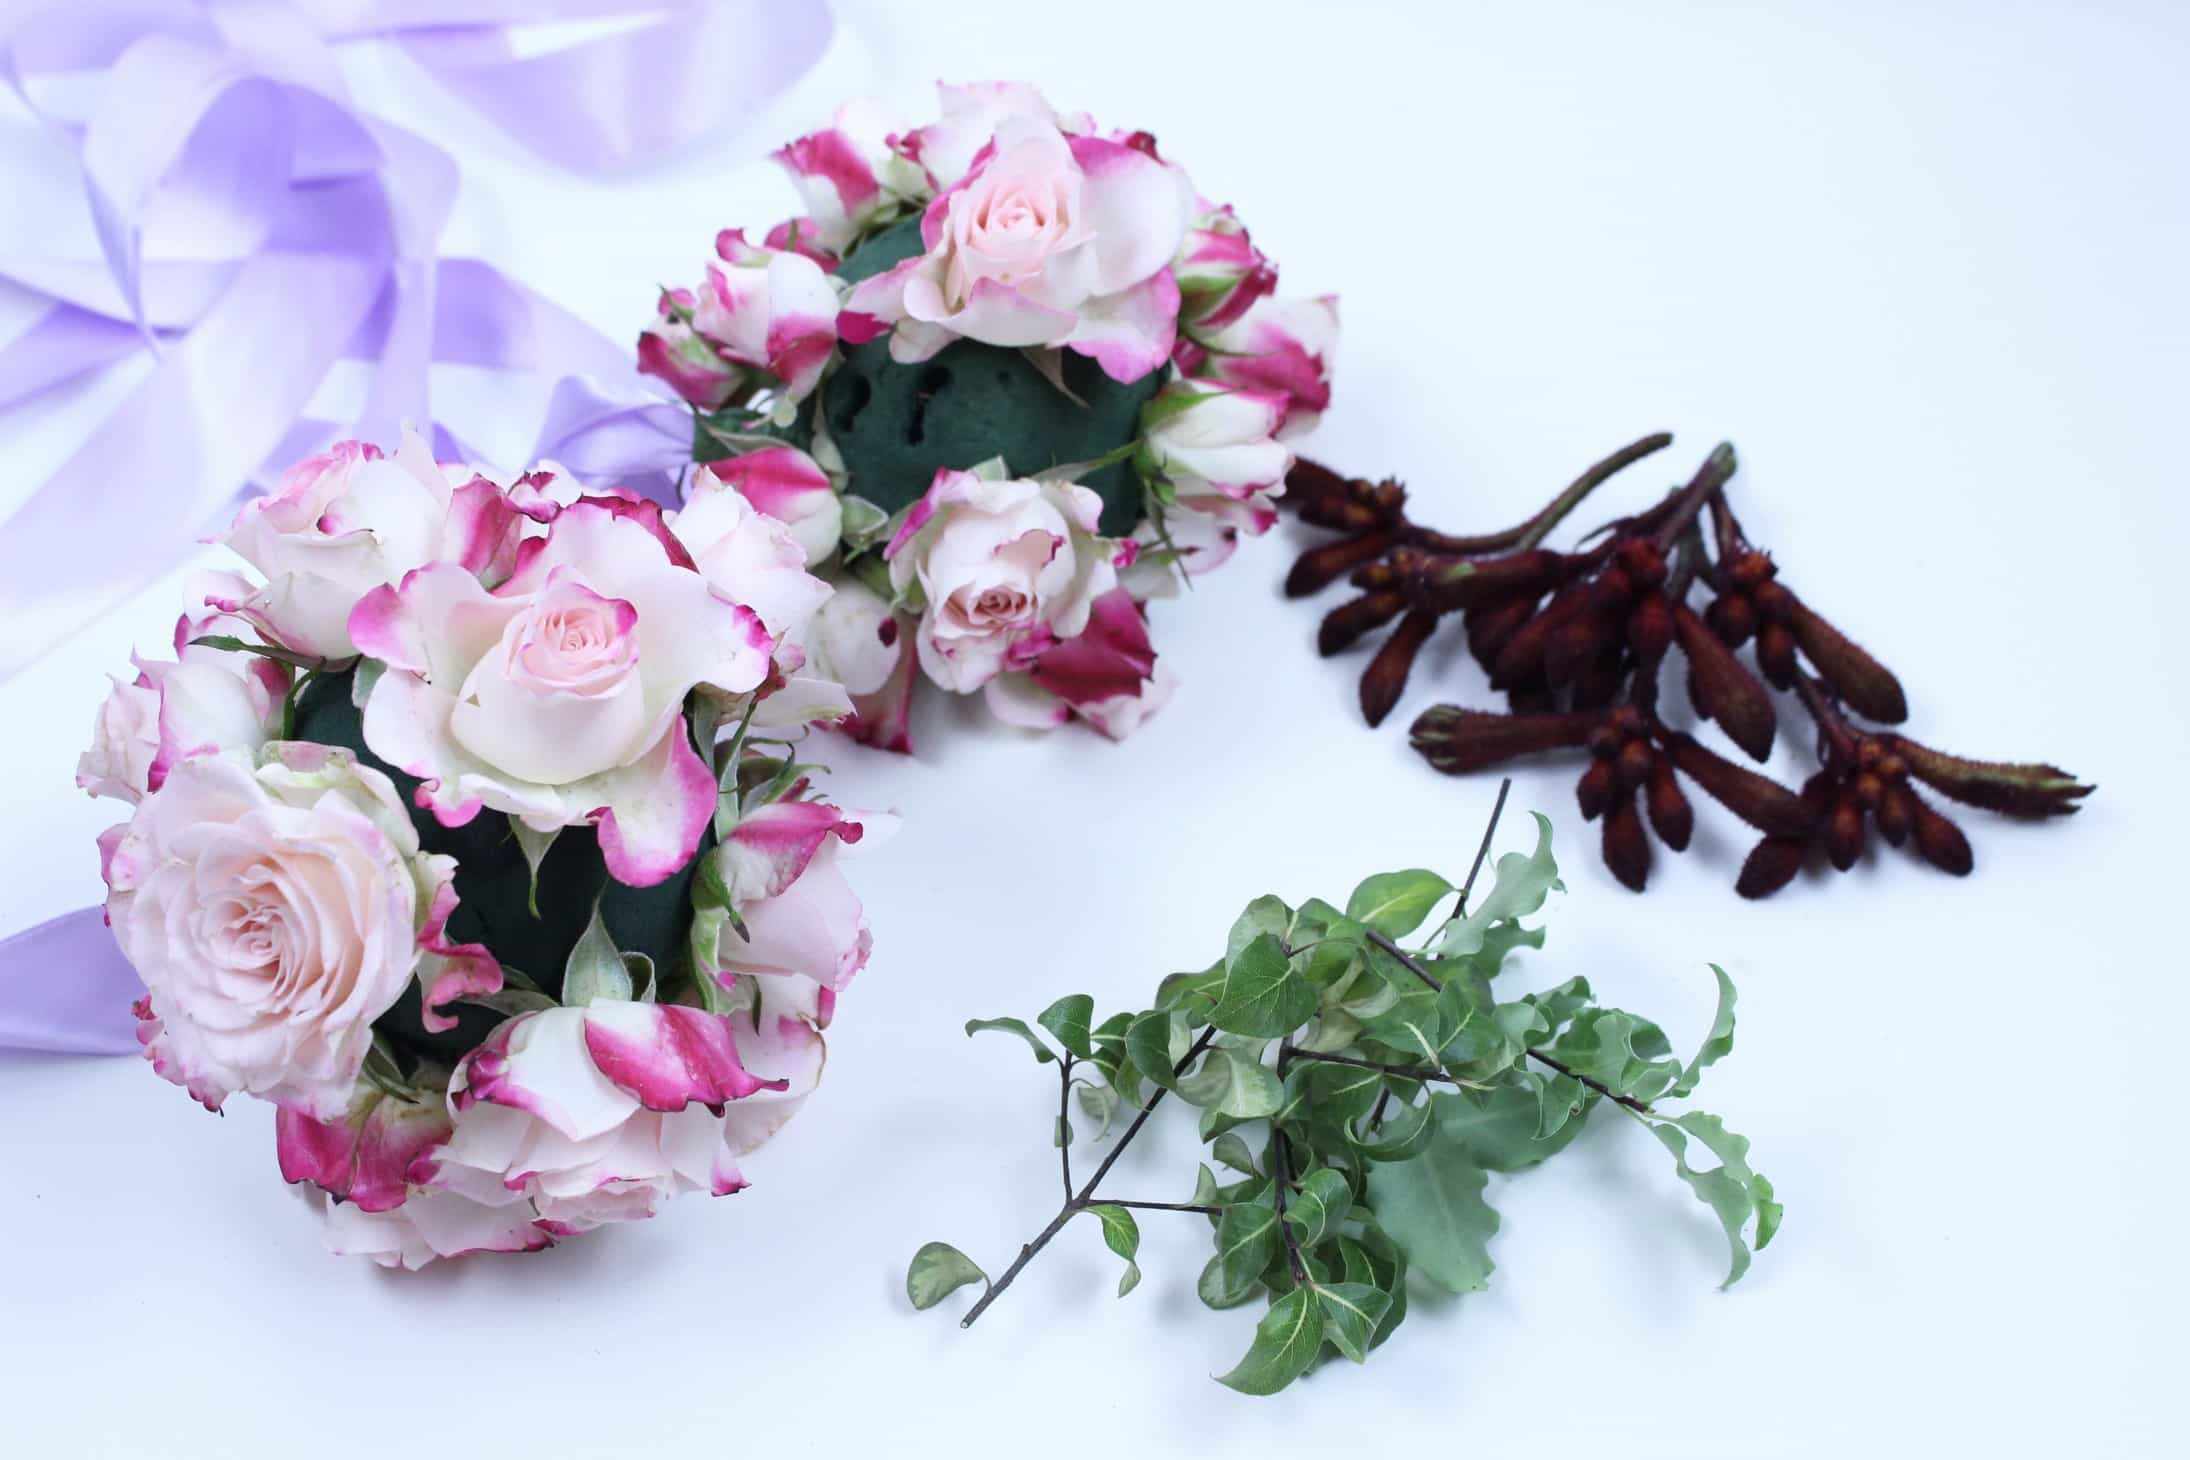 How to make flower balls with fresh flowers - The Smell of Roses The ...